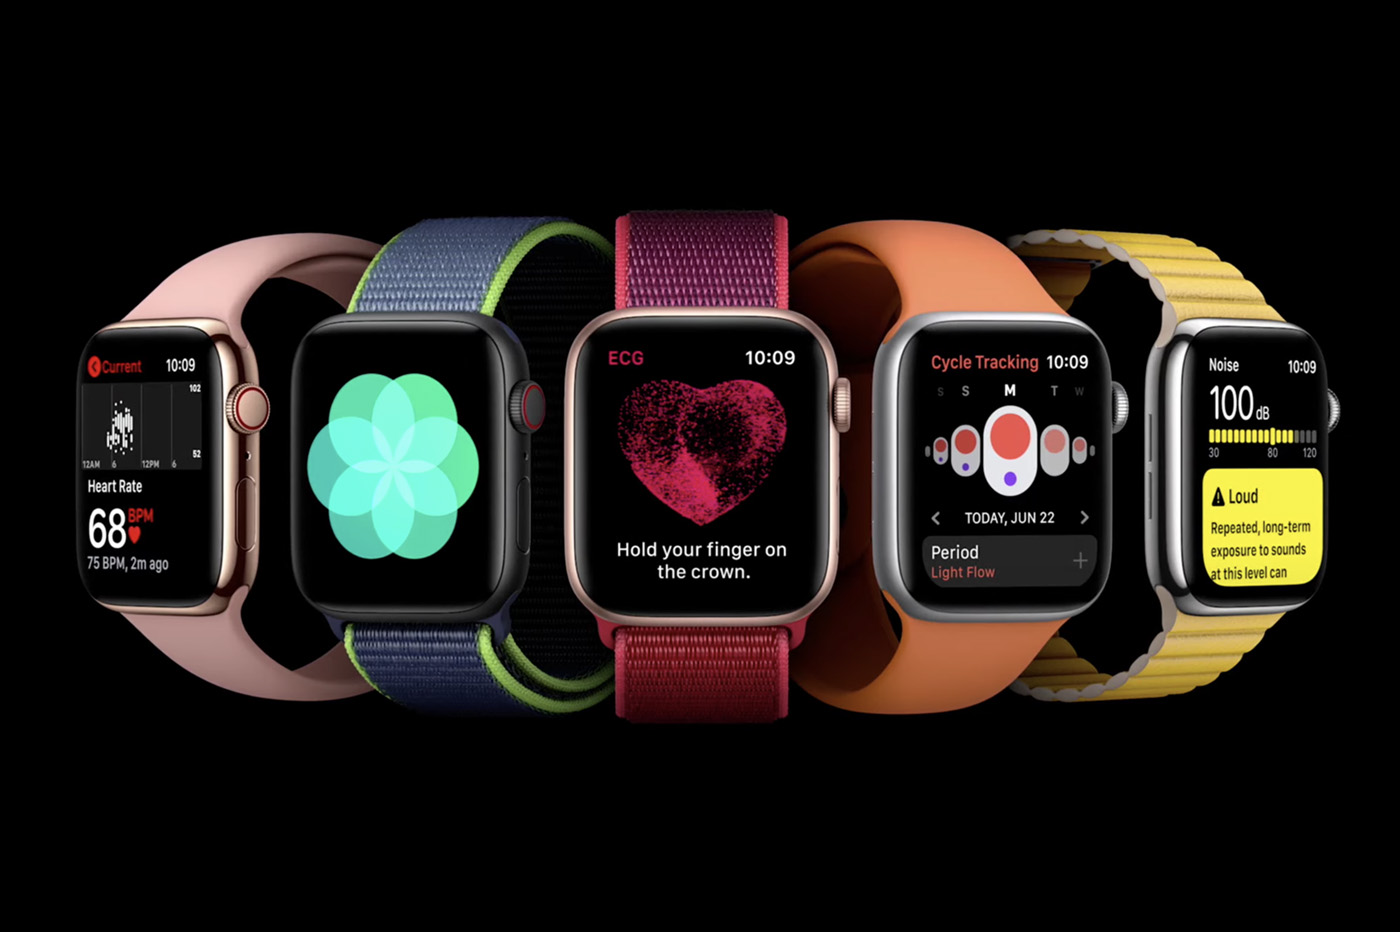 capture de la WWDC 2020 avec l'Apple Watch et le nouveau watchOS 7